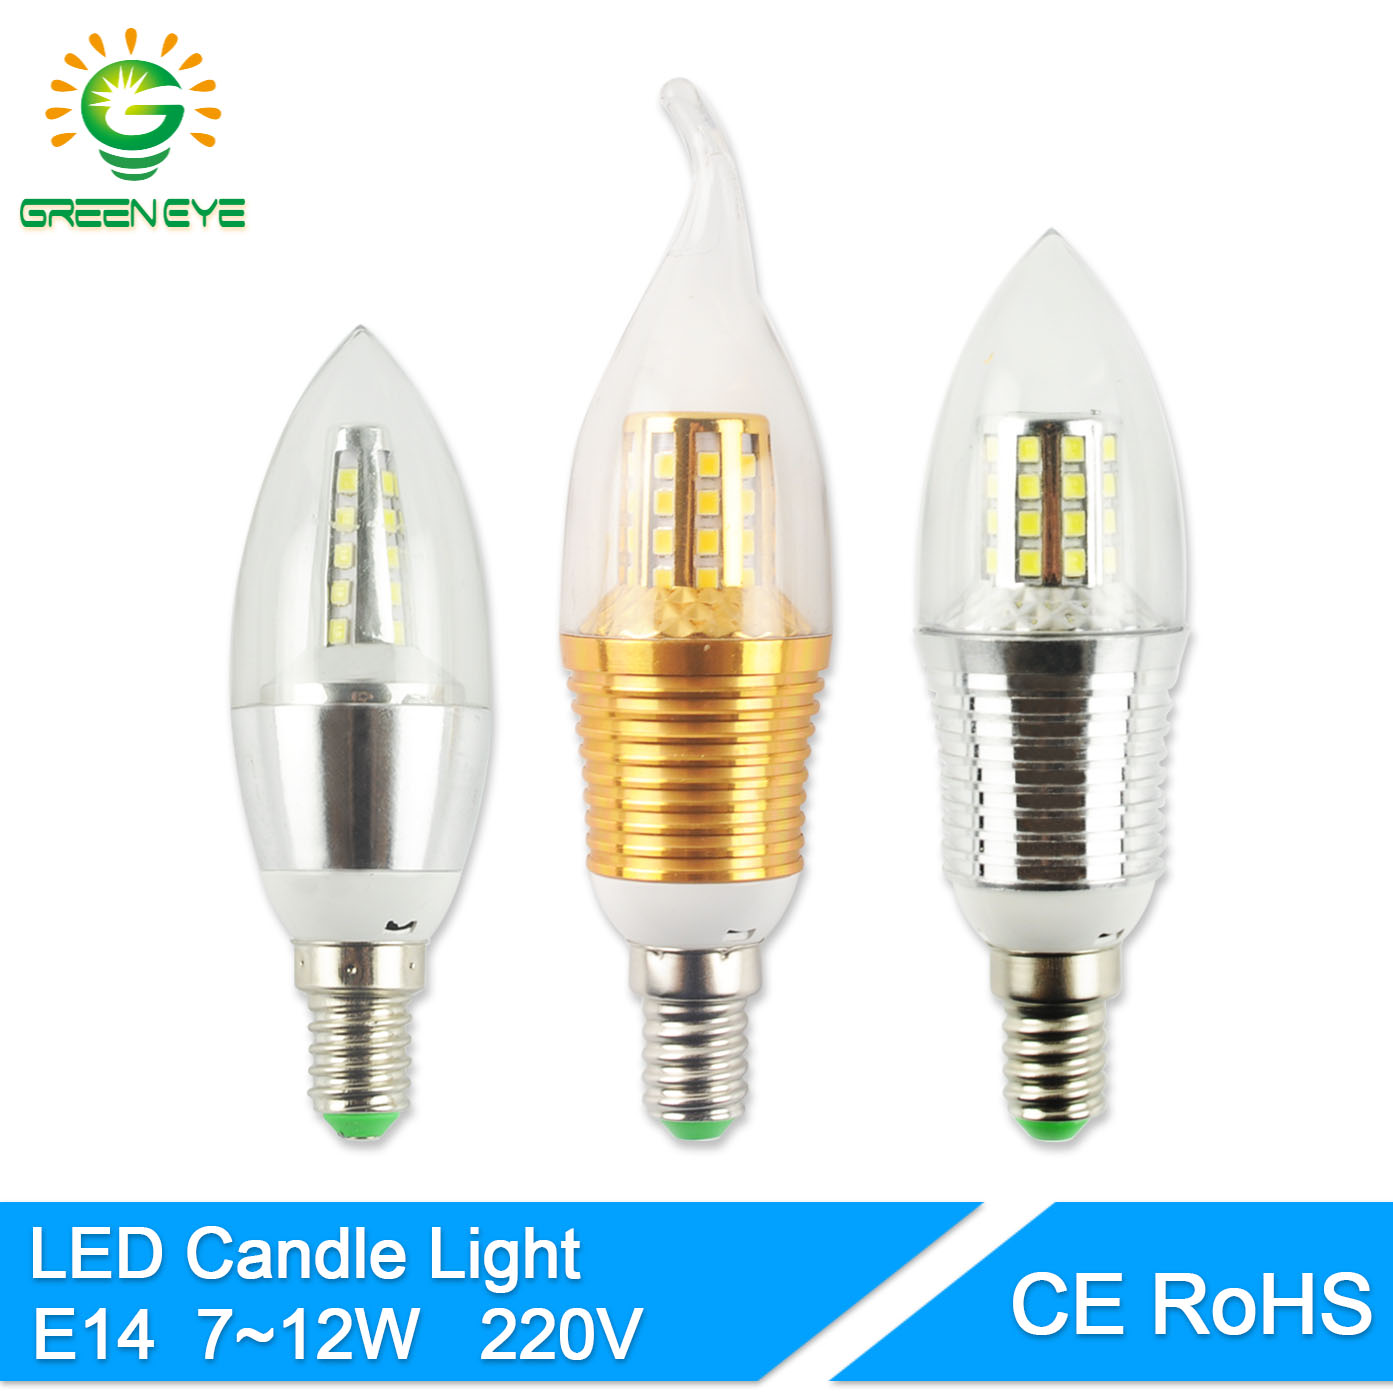 GreenEye LED Bulb E14 220V Golden Silver Aluminum Candle Lamp Light 7W 9W 12W For Crystal Chandelier Antique Lampara Ampoule 5pcs g9 4w 320lm led candle bulb for chandelier